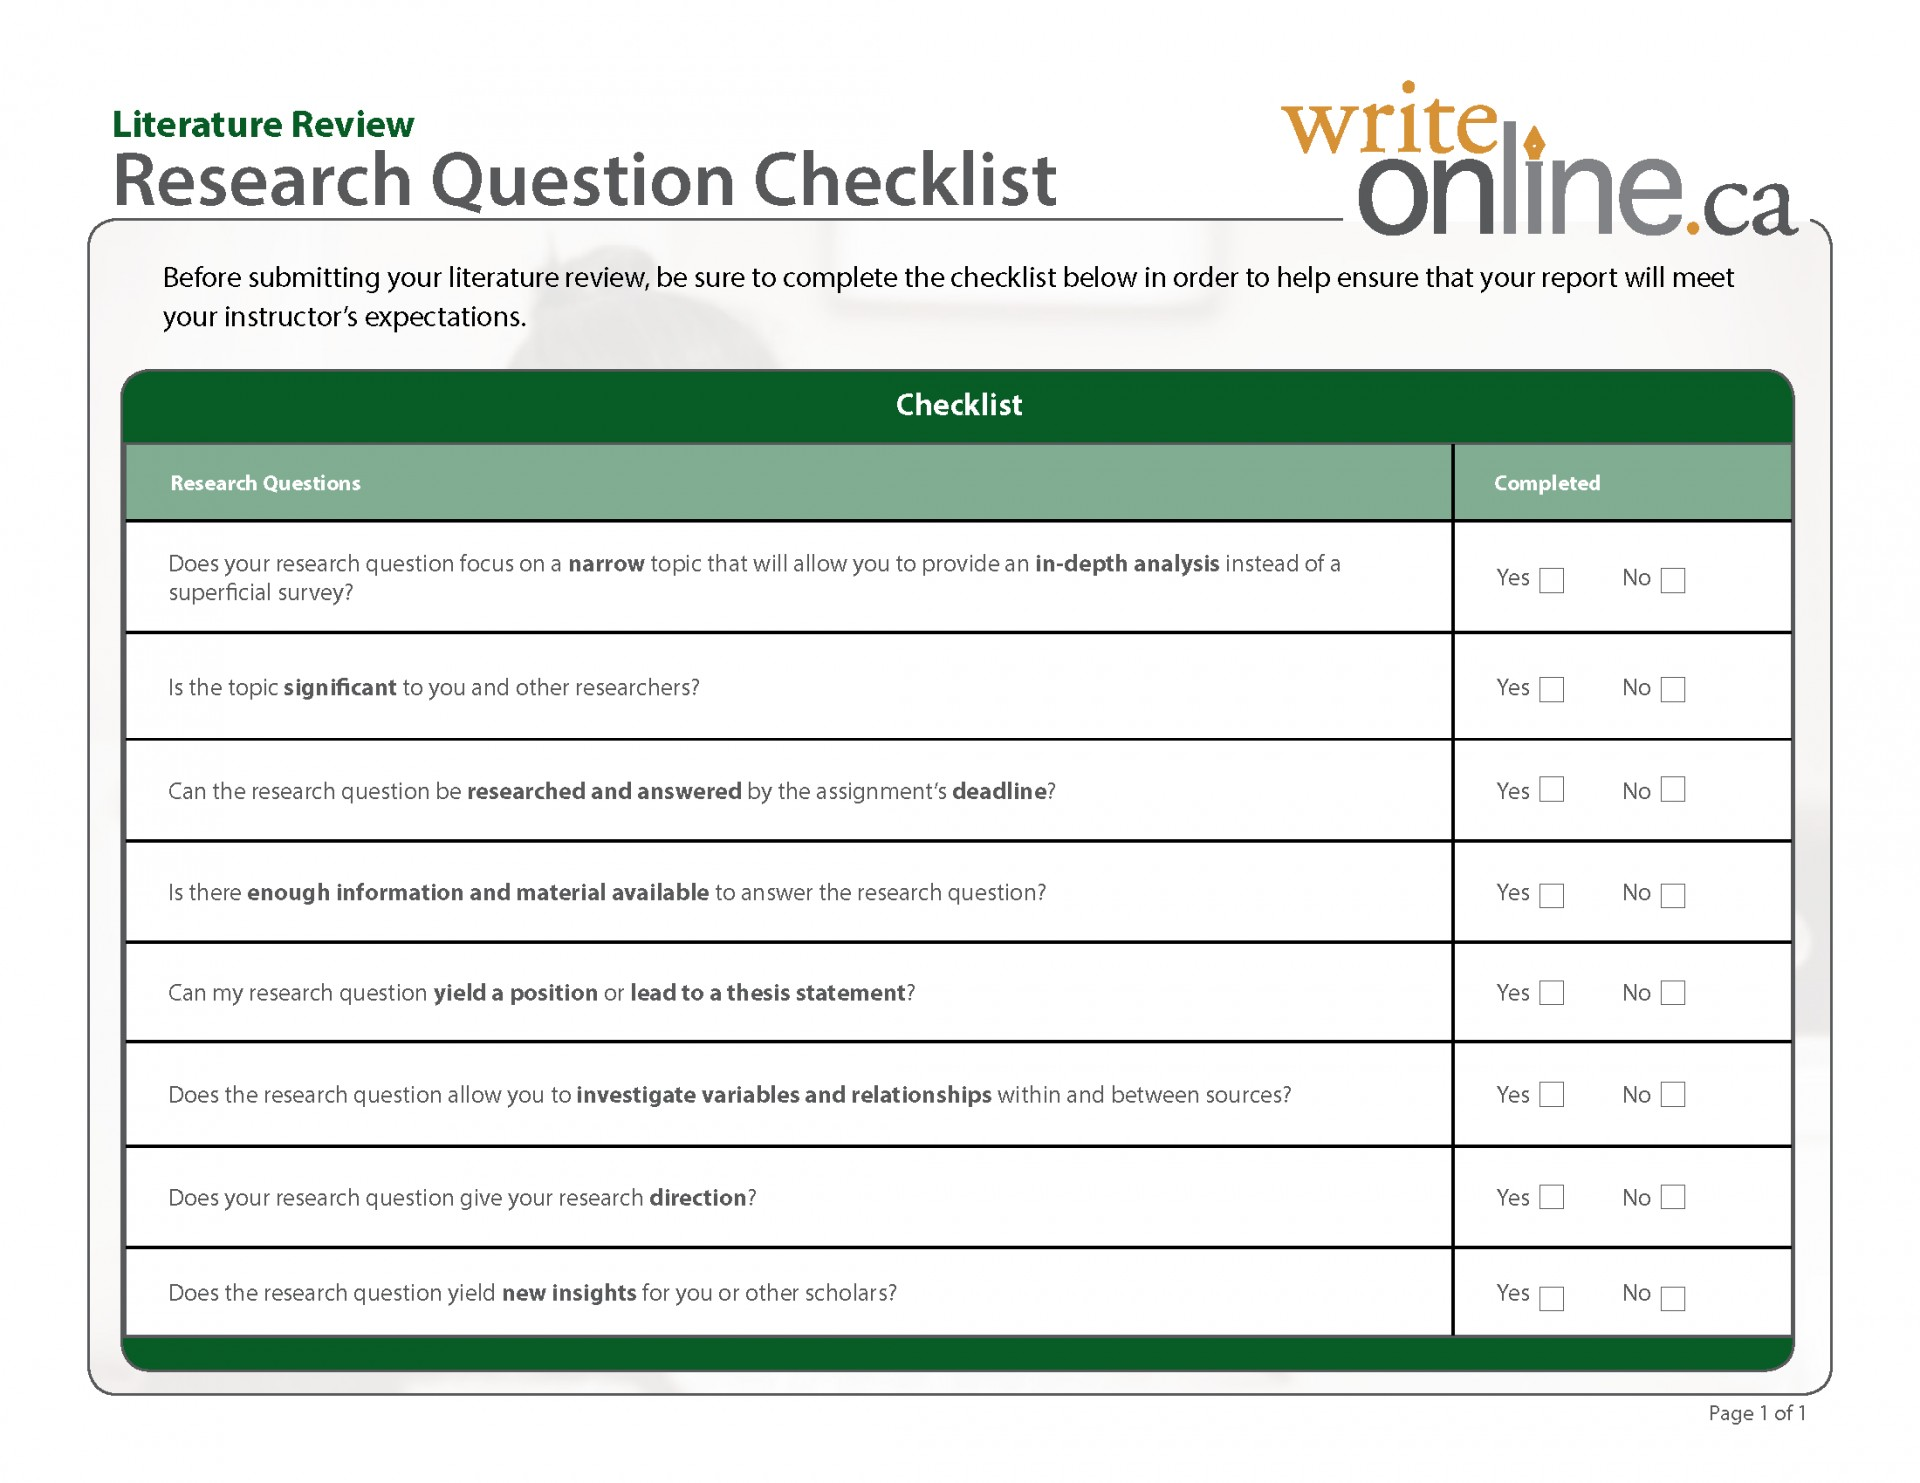 005 Research Paper How To Write Questions Pdf Researchquest Checklist Astounding Objectives And 1920